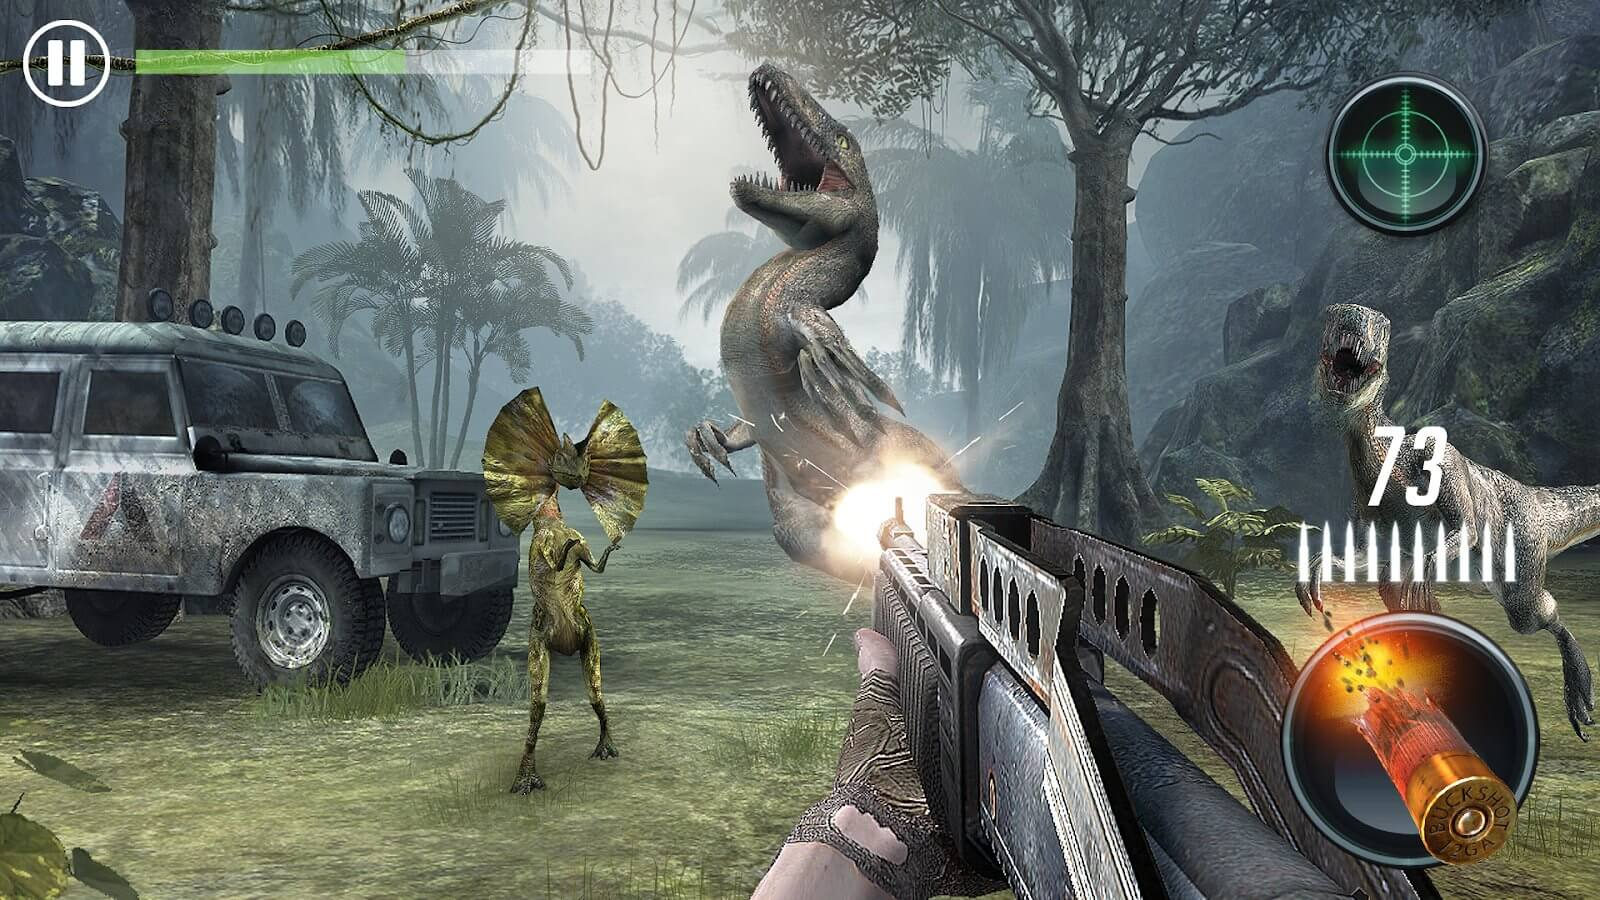 Jurassic Missions: shooting games